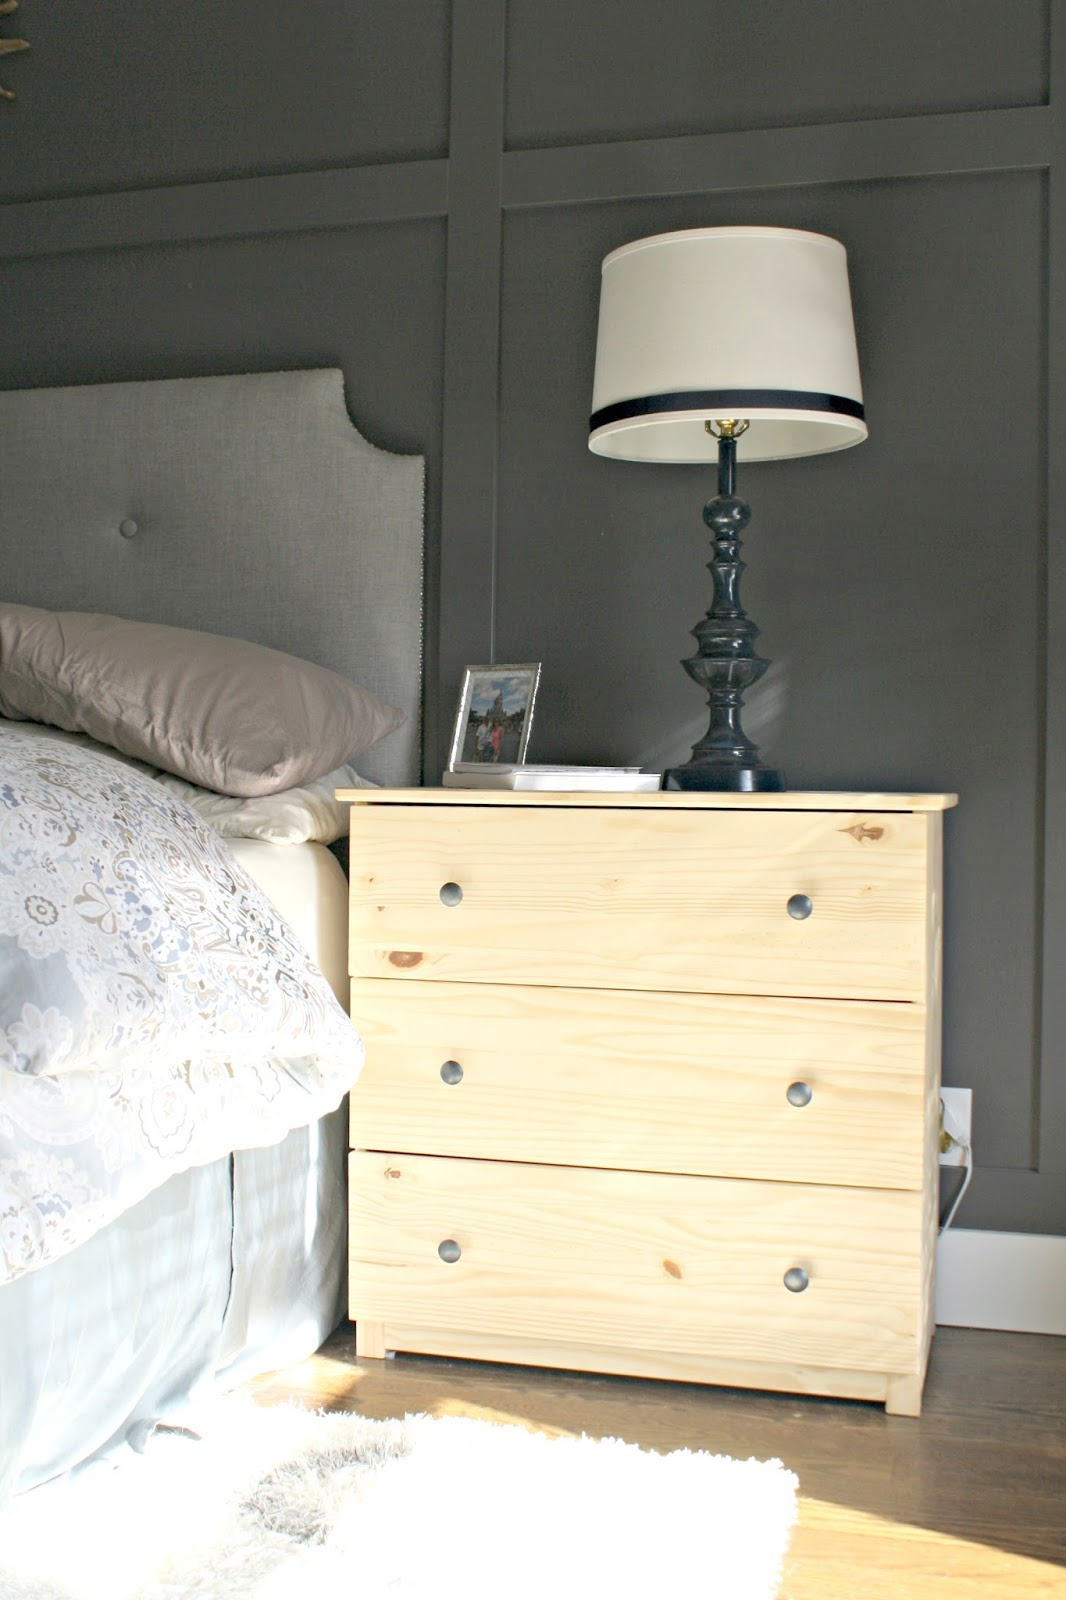 Best Ikea Dresser Hacks As Nightstands From Thrifty Decor Ch*Ck This Month